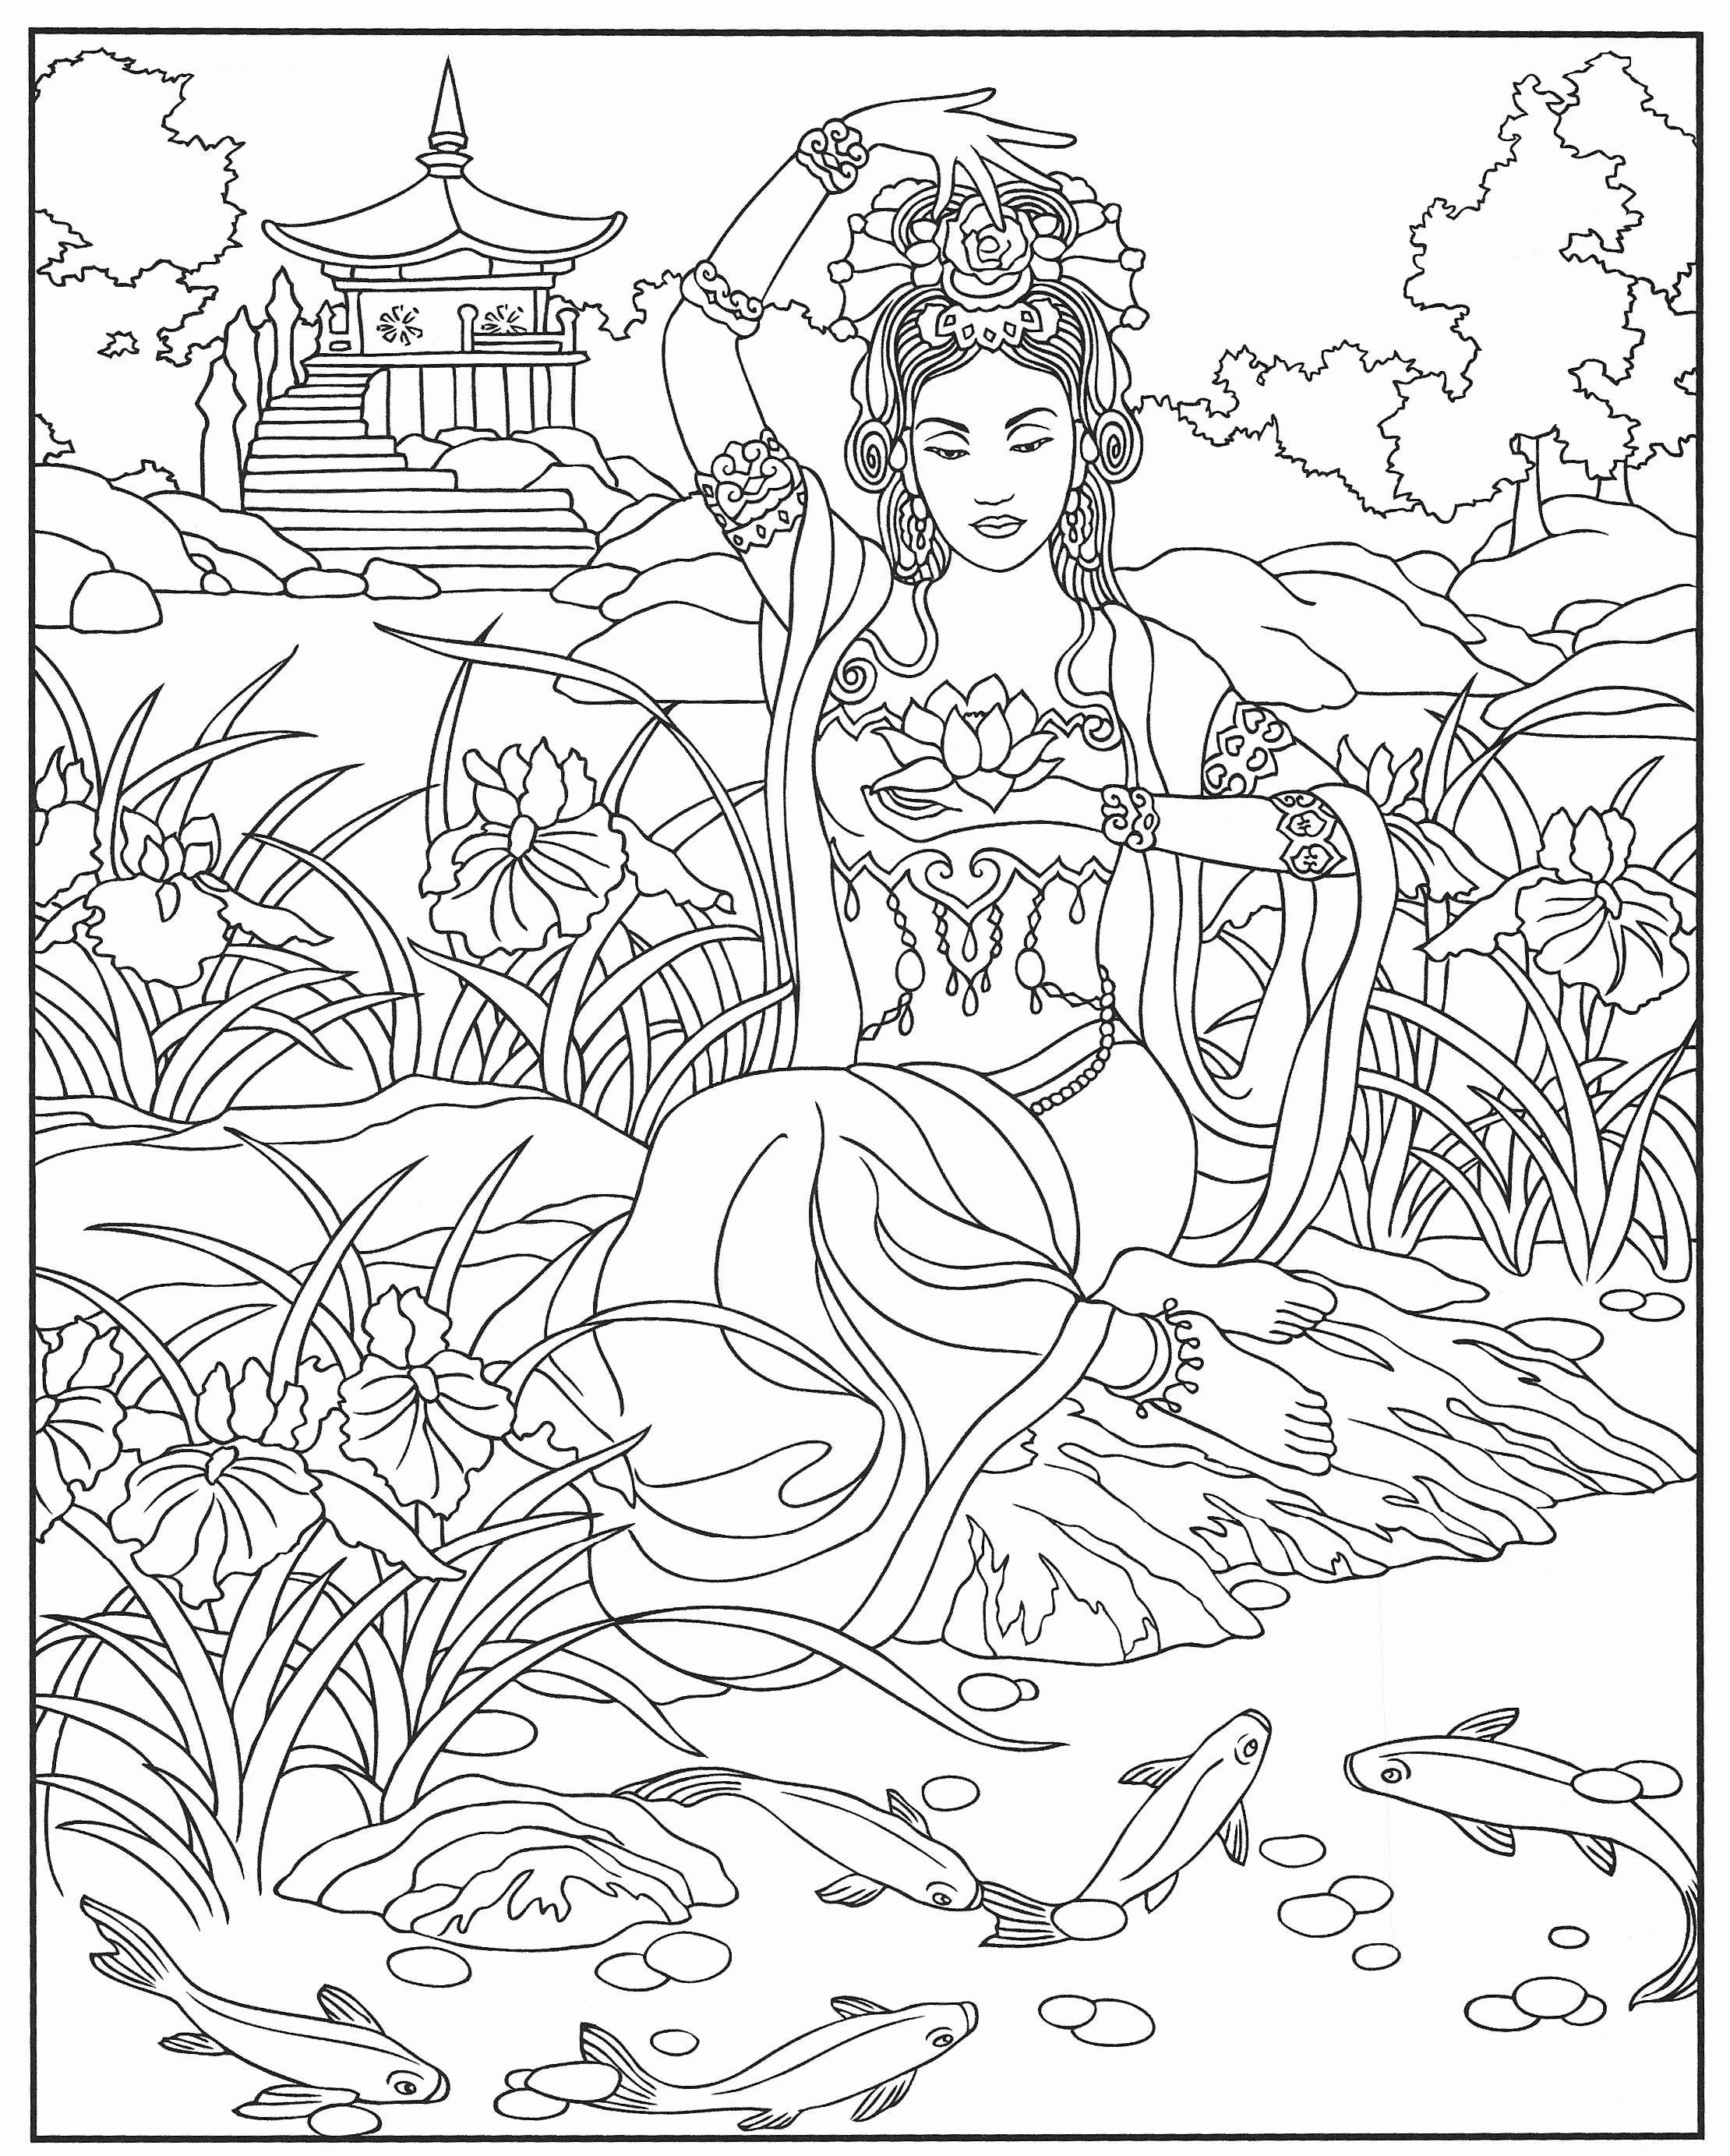 Merry Christmas Grandma Coloring Pages With Snowing